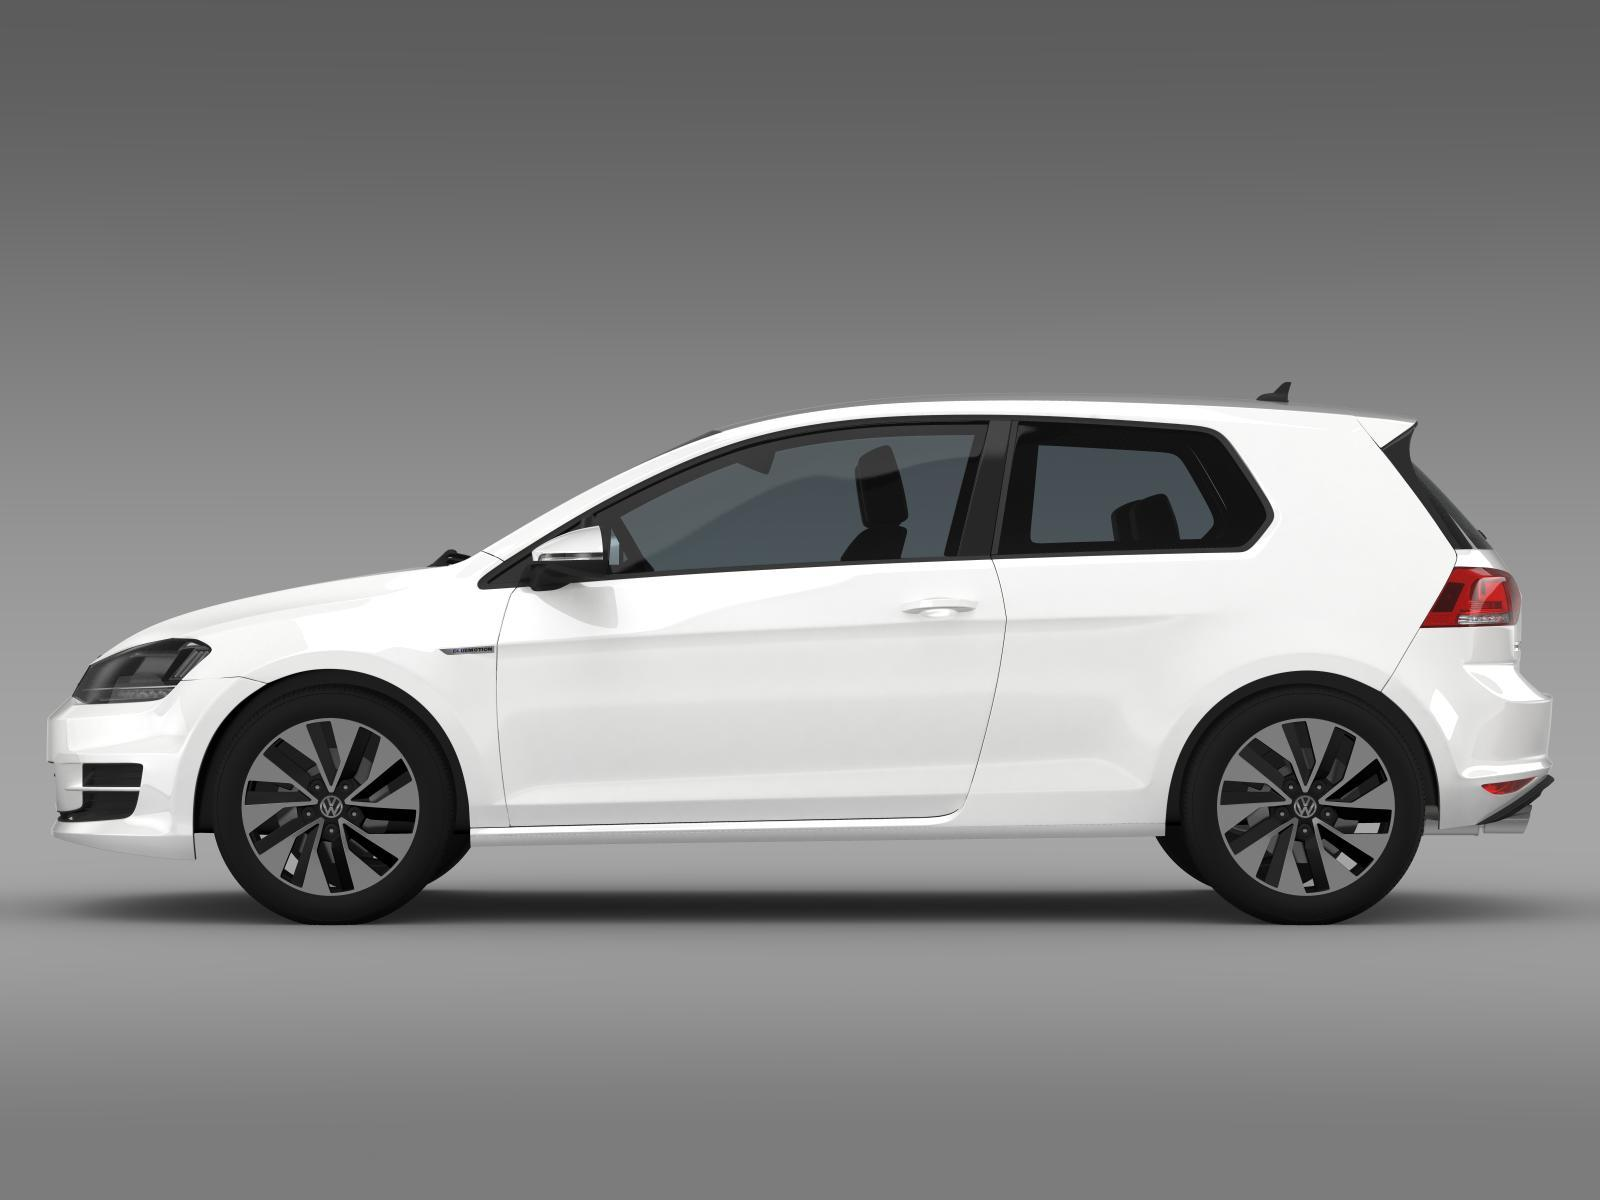 vw golf tdi bluemotion 3 door 2015 by creator 3d 3docean. Black Bedroom Furniture Sets. Home Design Ideas